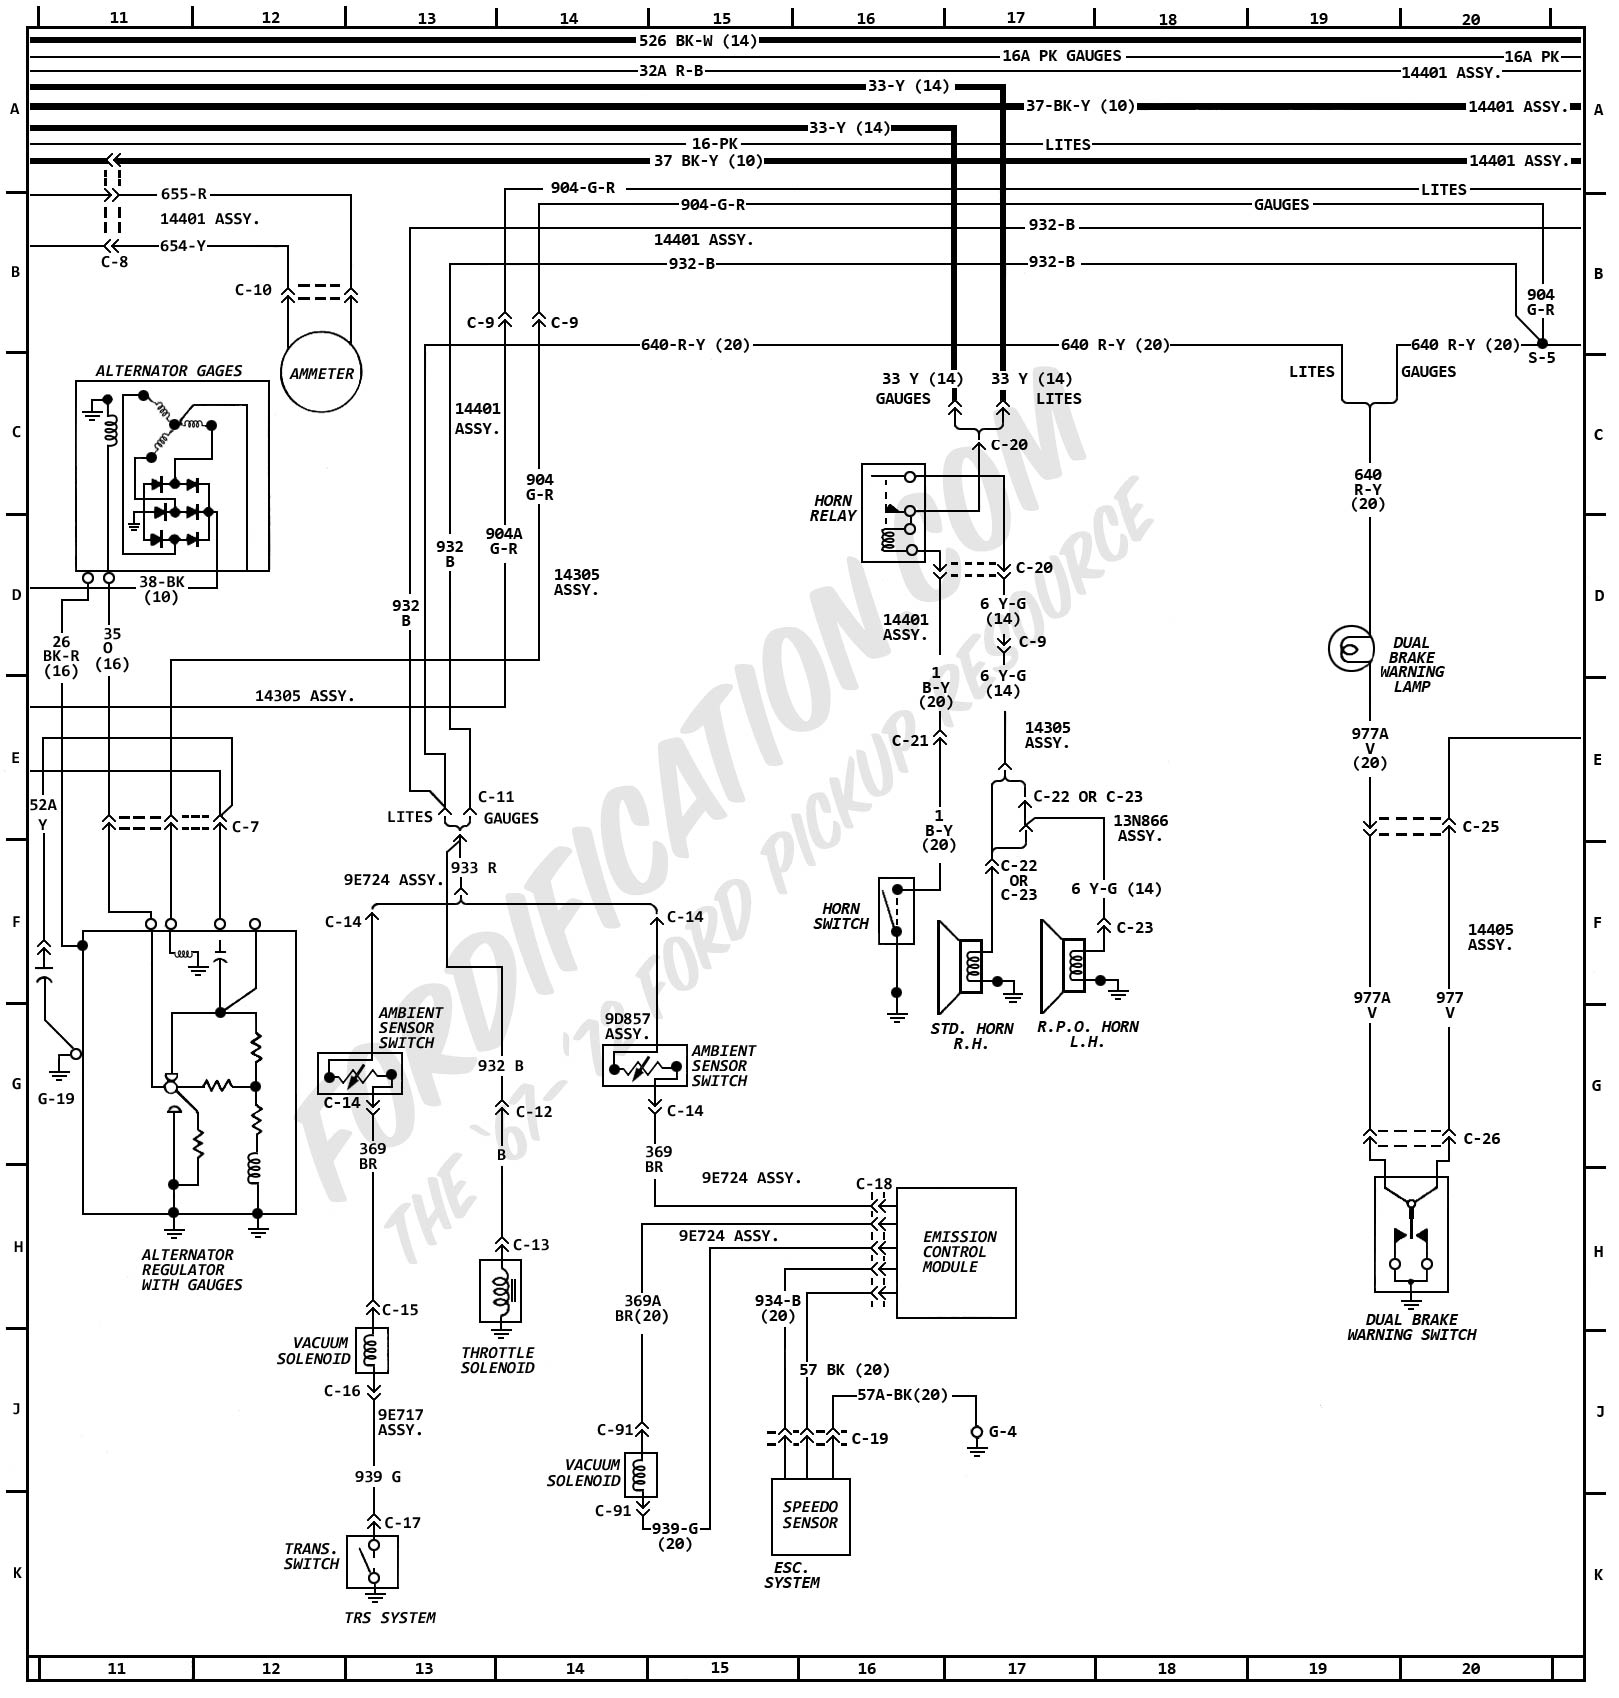 hight resolution of 1972 f250 ignition wiring schematic wiring diagram 2001 1972 ford f250 wiring diagram lmc truck 1972